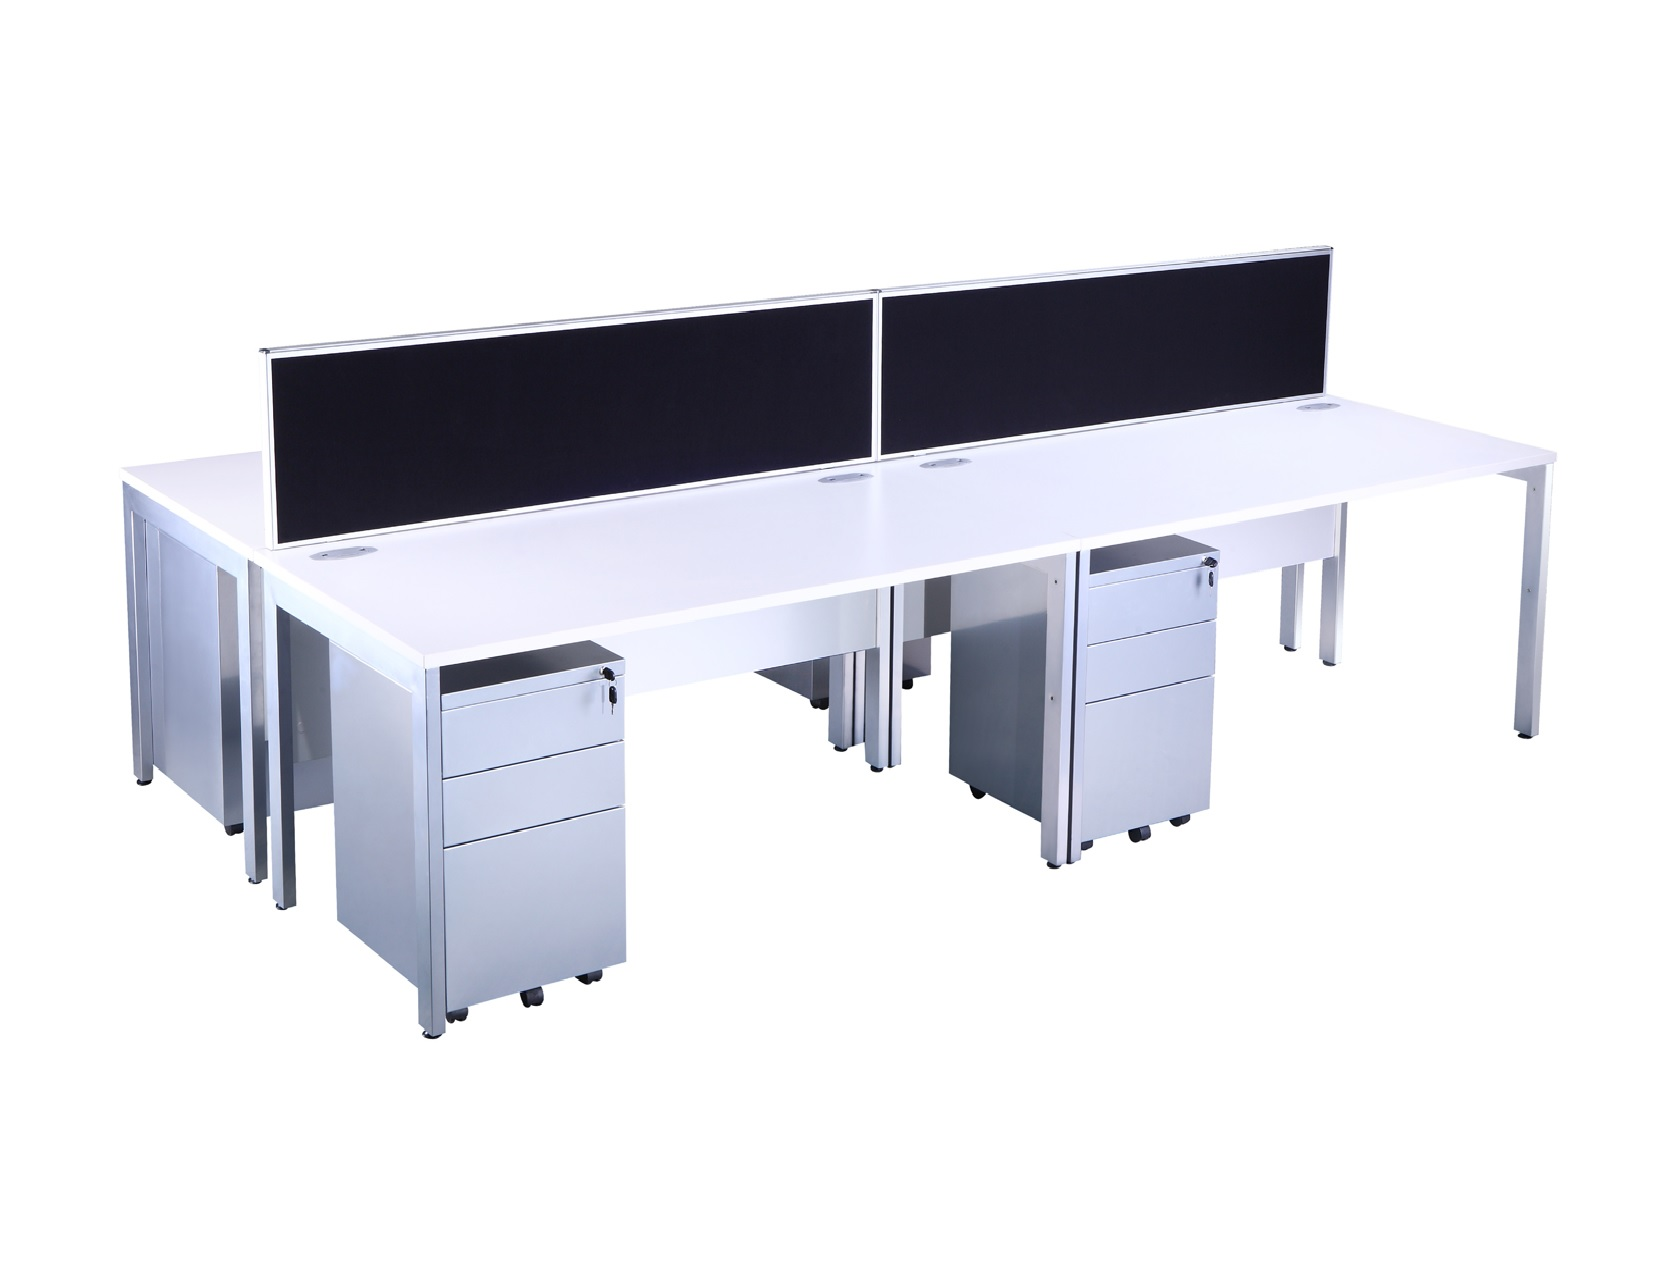 Explore White Bench Style Office Desk & Pedestal Sets